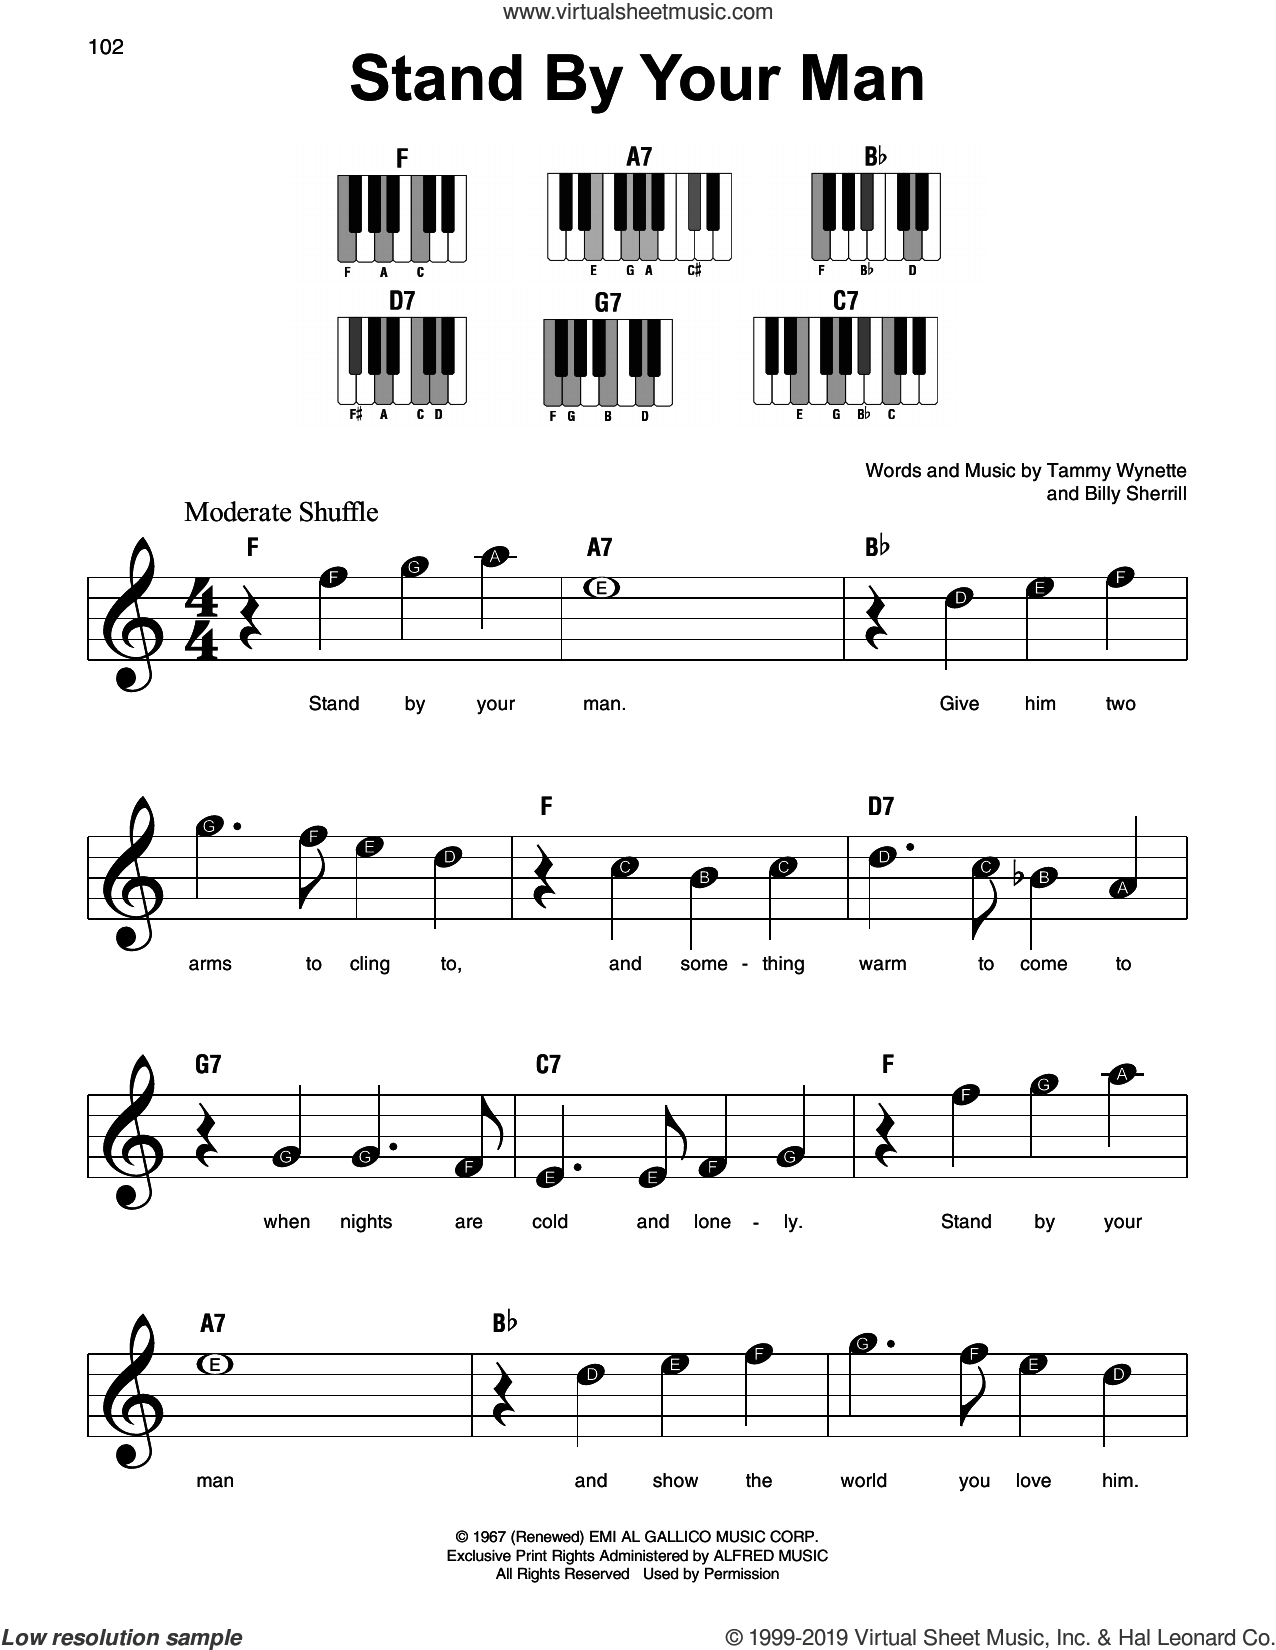 Stand By Your Man sheet music for piano solo by Tammy Wynette and Billy Sherrill, beginner skill level